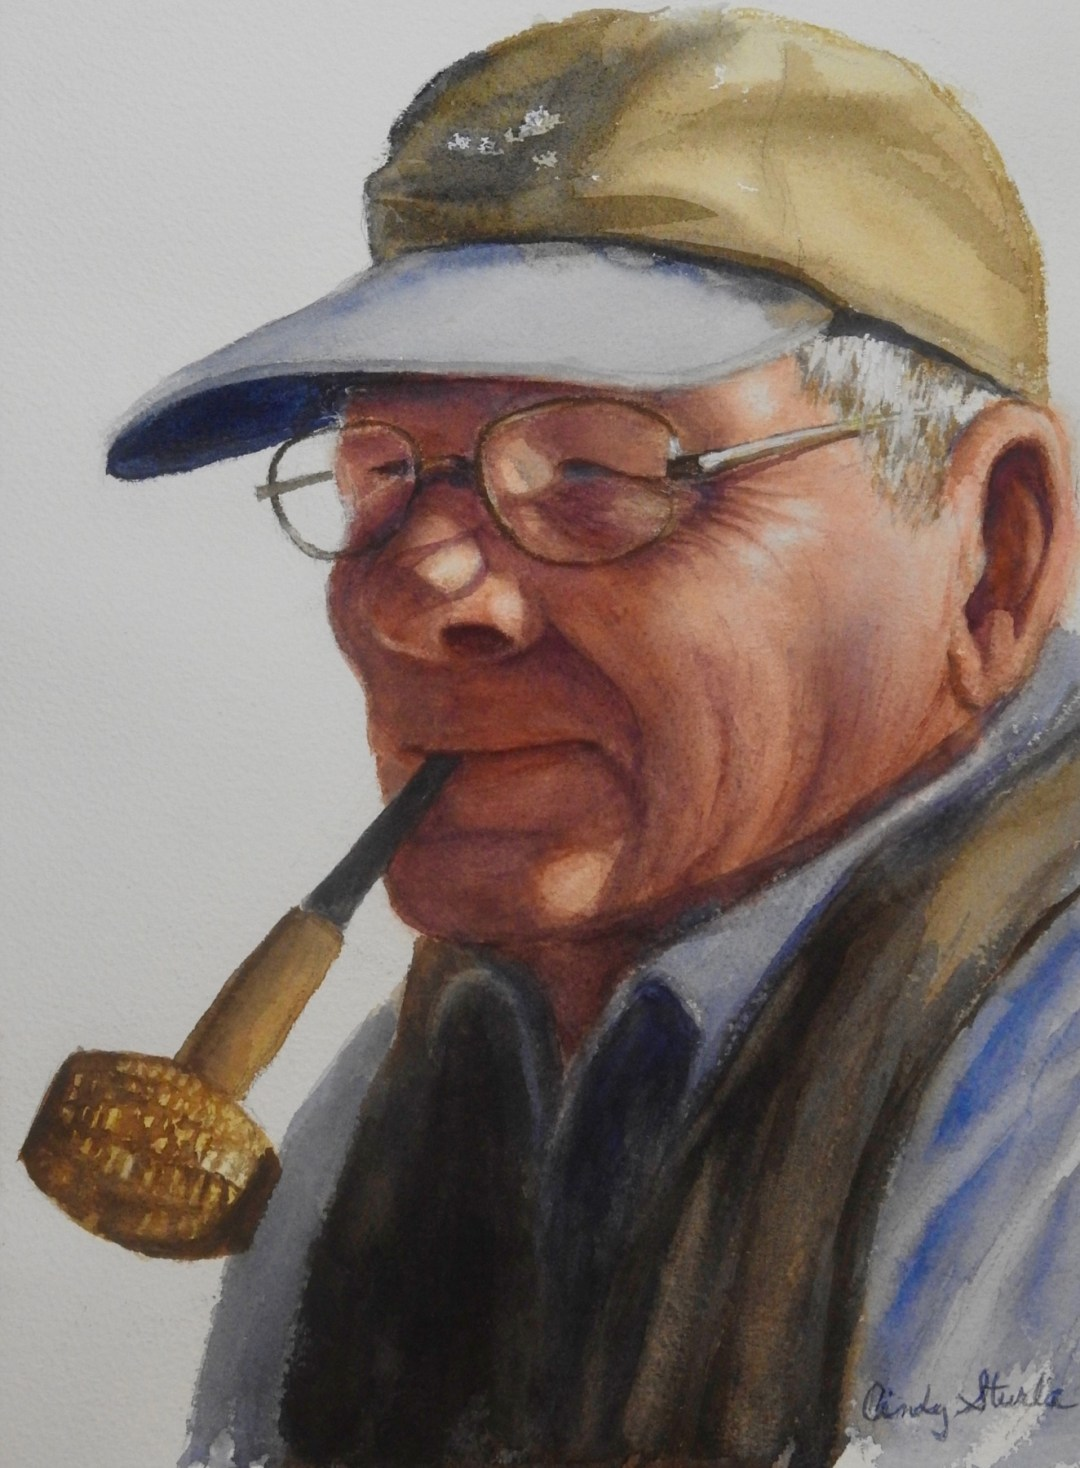 Sturla, Cindy - Charles Reid with Corn Cob Pipe